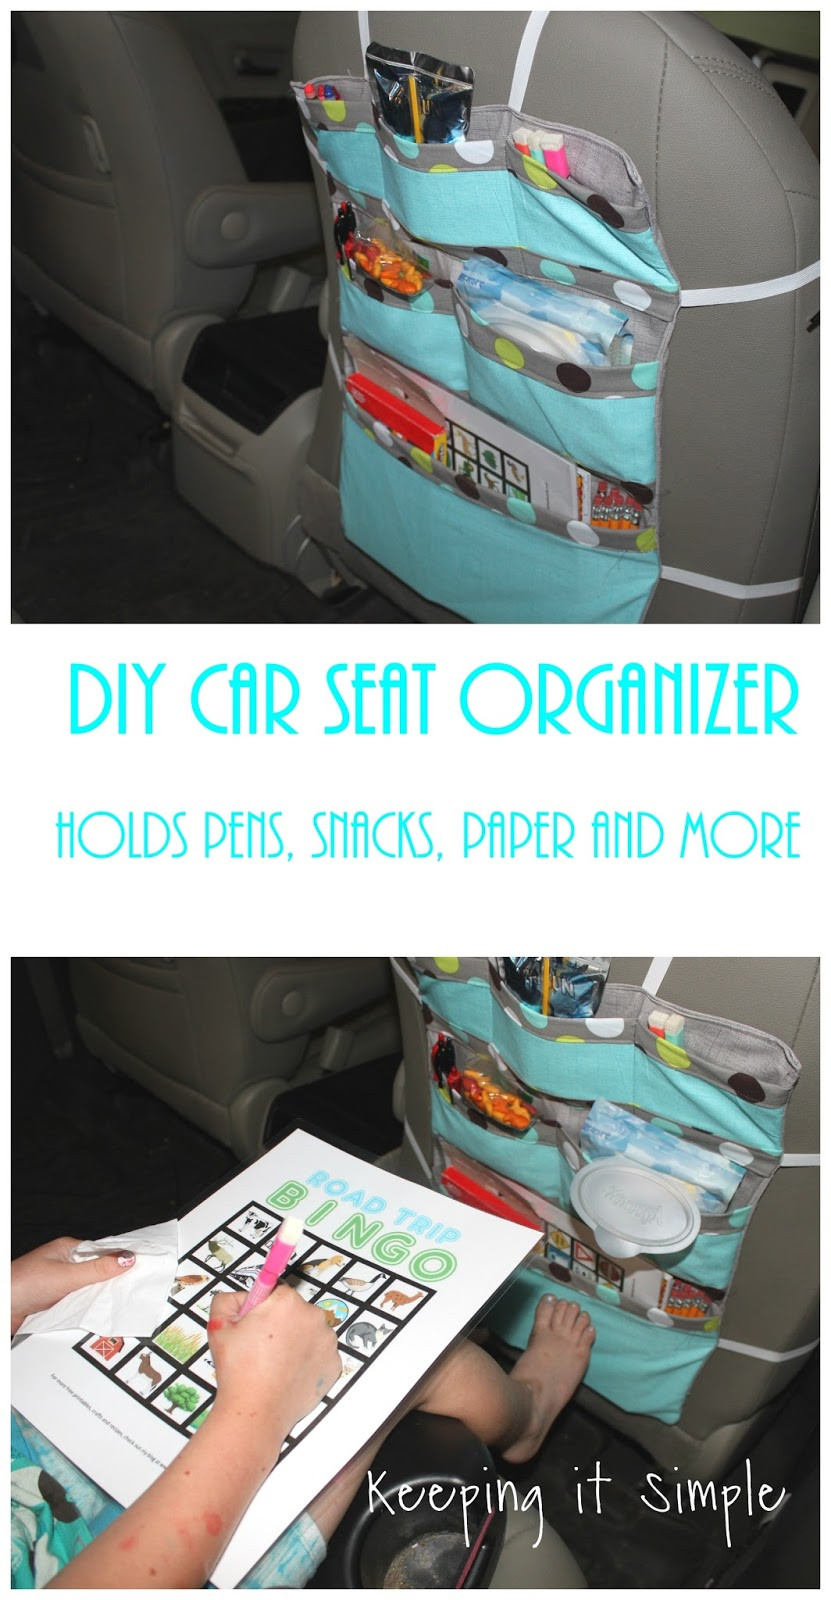 DIY Car Organizer  Keeping it Simple DIY Car Seat Organizer Perfect for